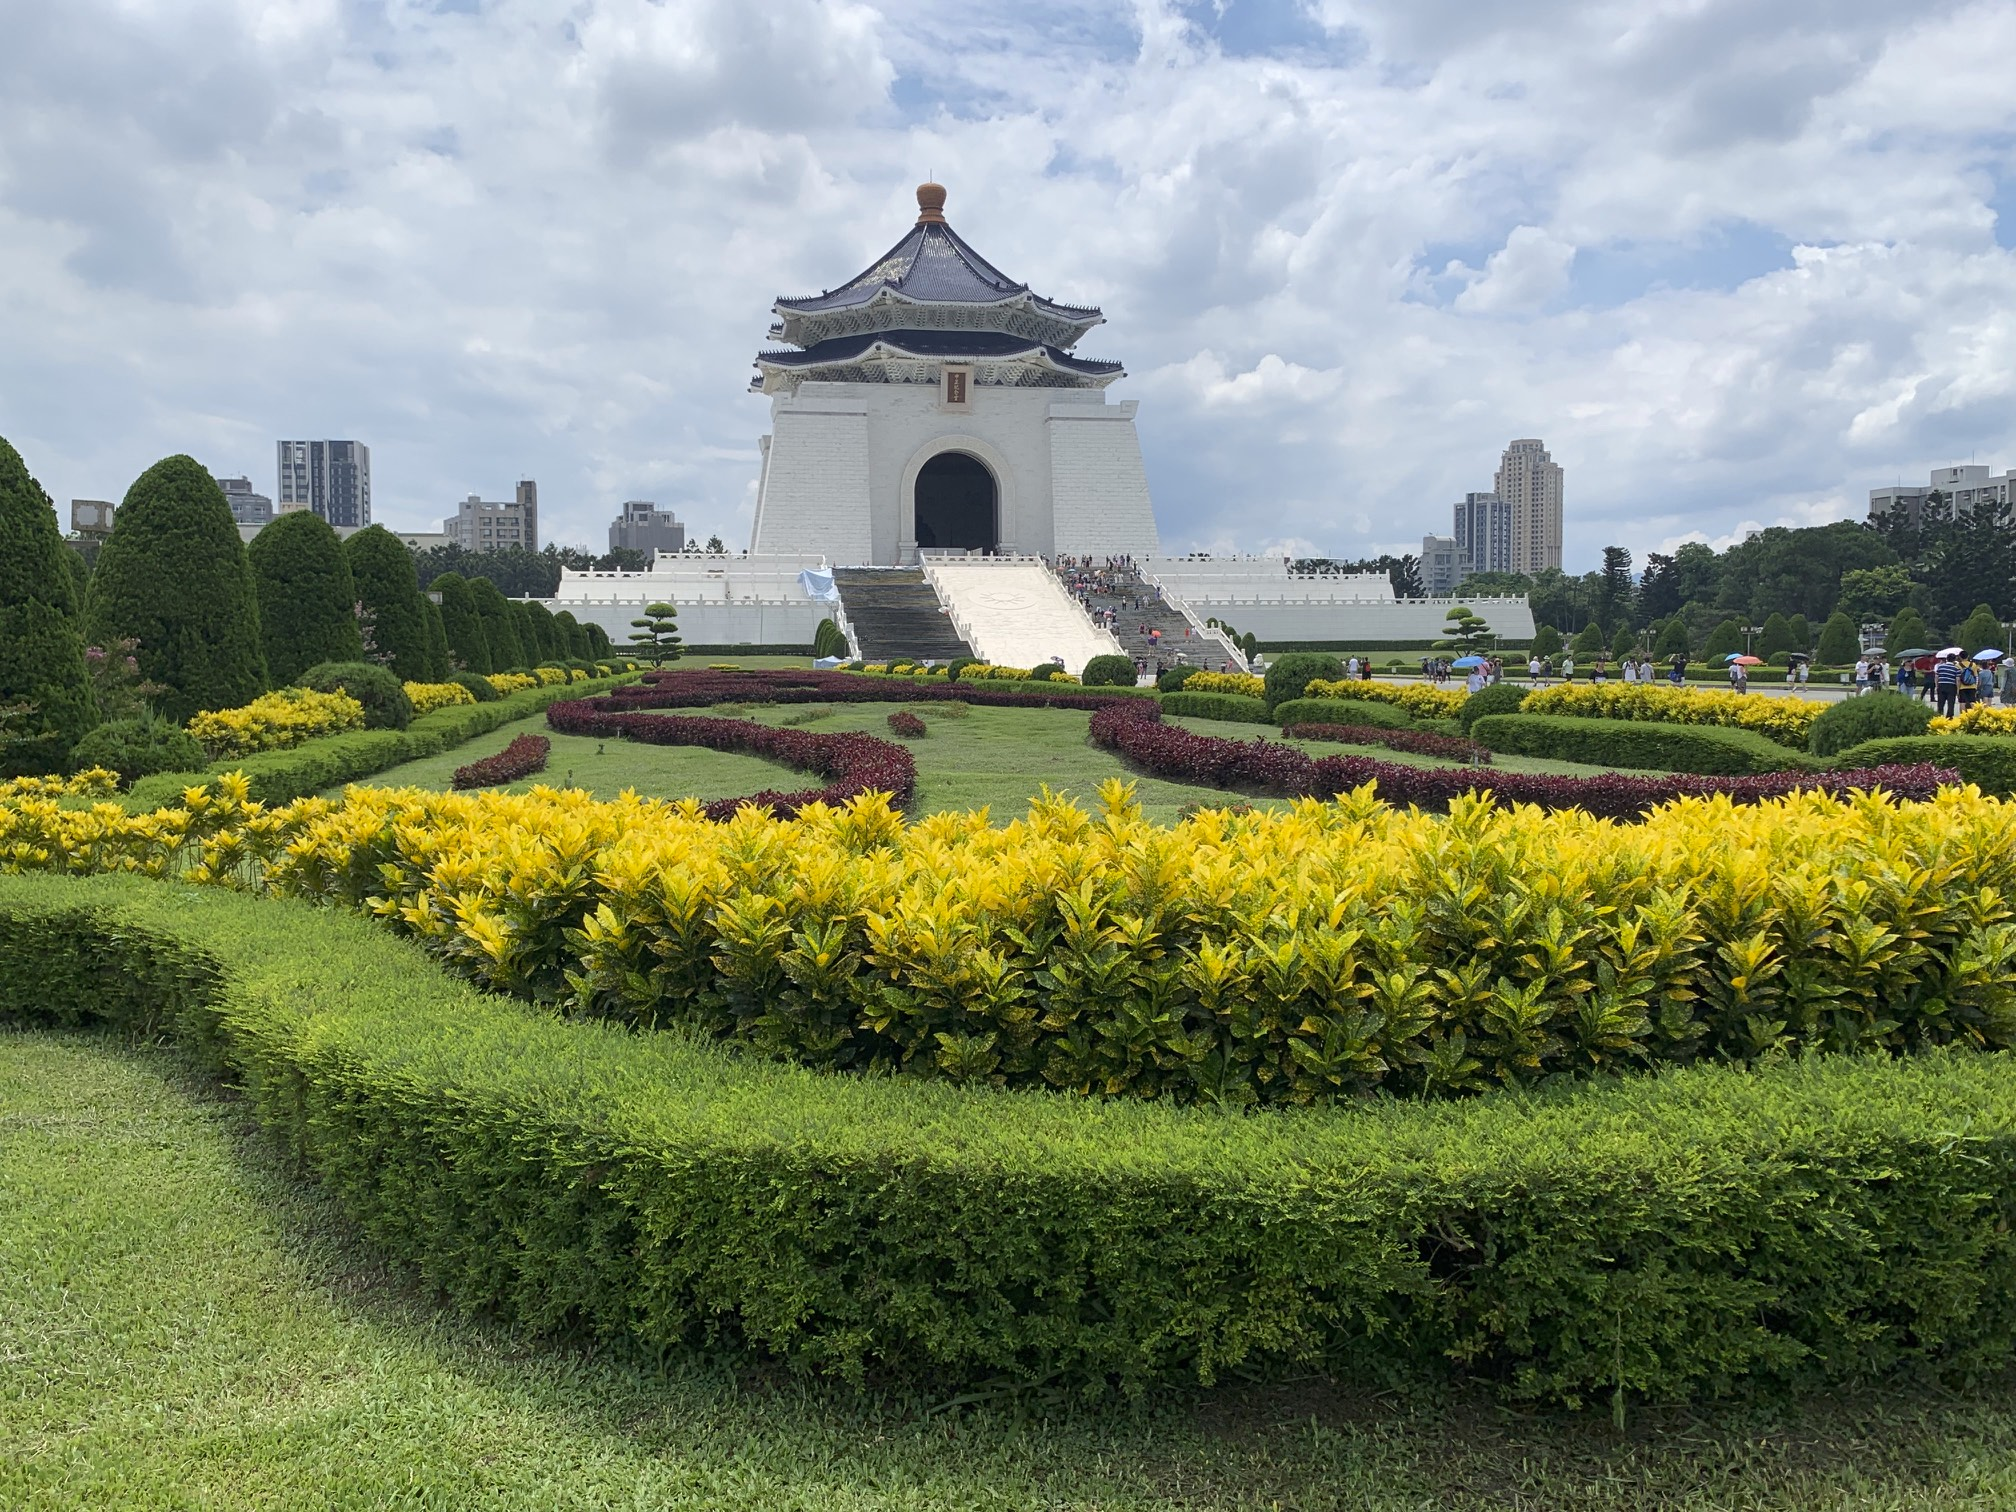 "The most prominent historical landmark in Taiwan, the CKS Memorial Hall was erected in honor and memory of Generalissimo Chiang Kai-shek, the former President of the Republic of China, and was opened in 1980 as part of a national park and gathering area. The characters behind Chiang's statue read ""Ethics"", ""Democracy"", and ""Science"", and the inscriptions on the side read ""The purpose of life is to improve the general life of humanity"" and ""The meaning of life is to create and sustain subsequent lives in the universe""."